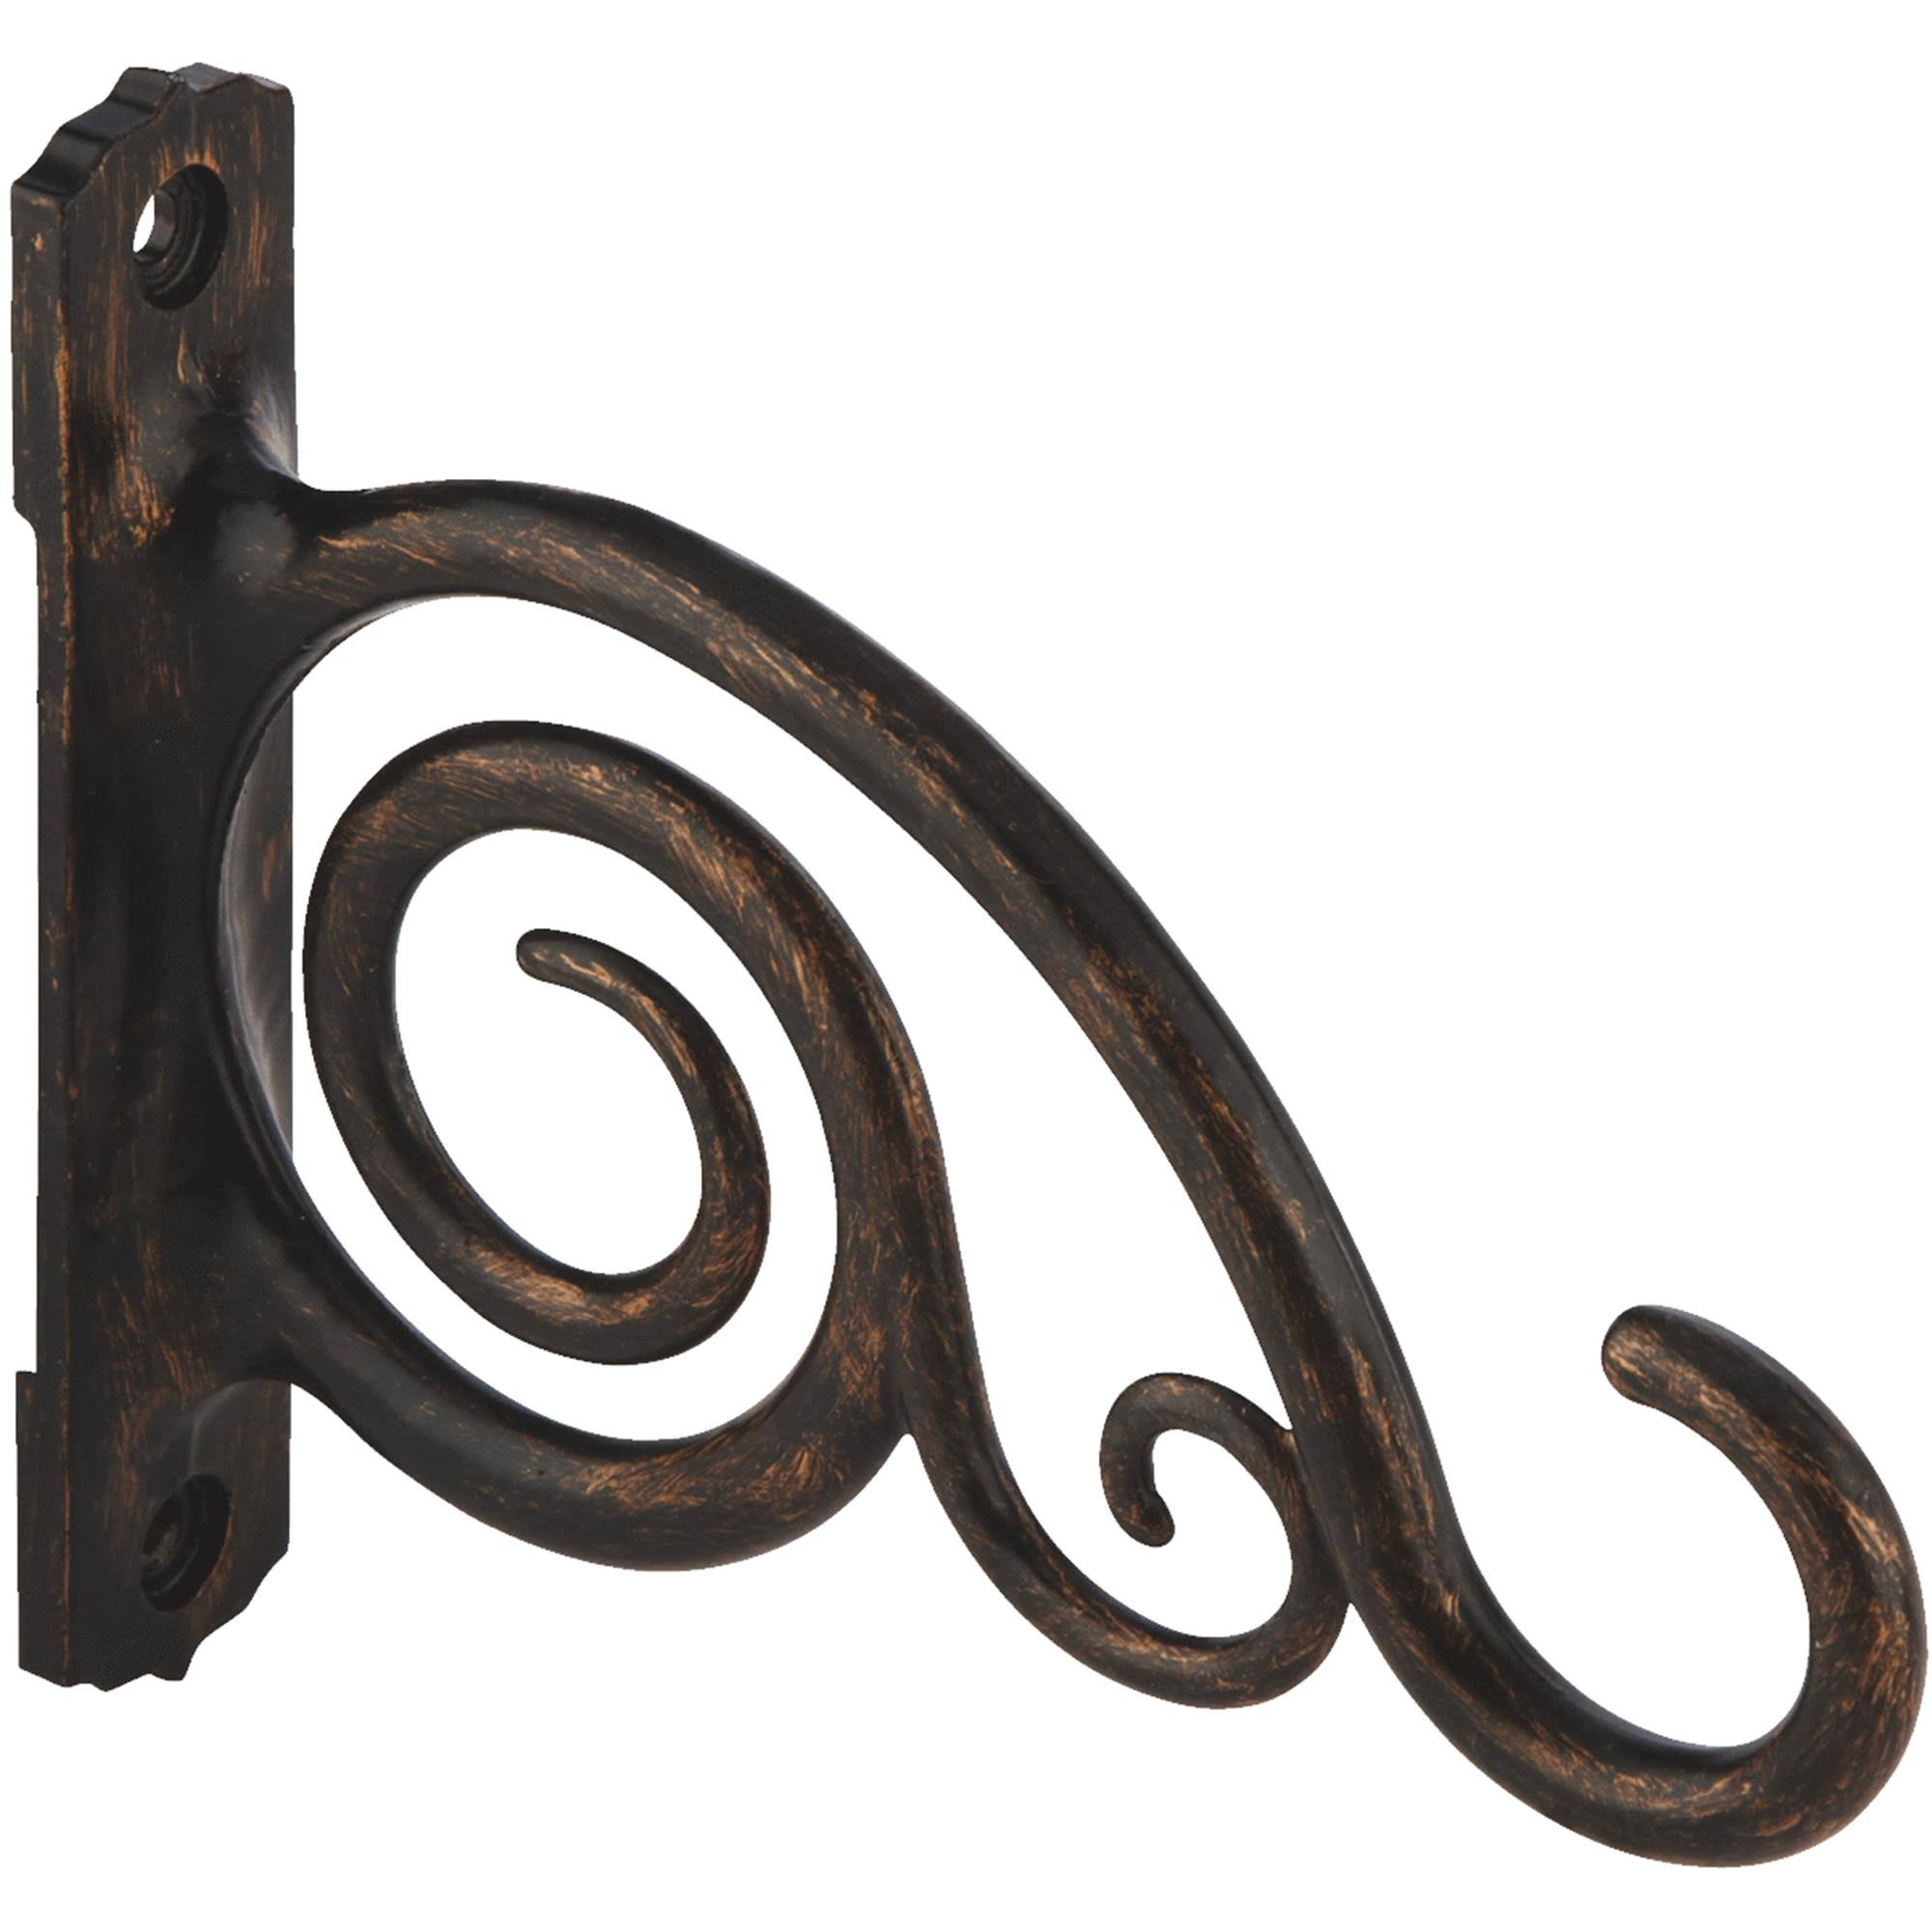 Panacea Decorative Hanging Plant Bracket - Bronze, 6""